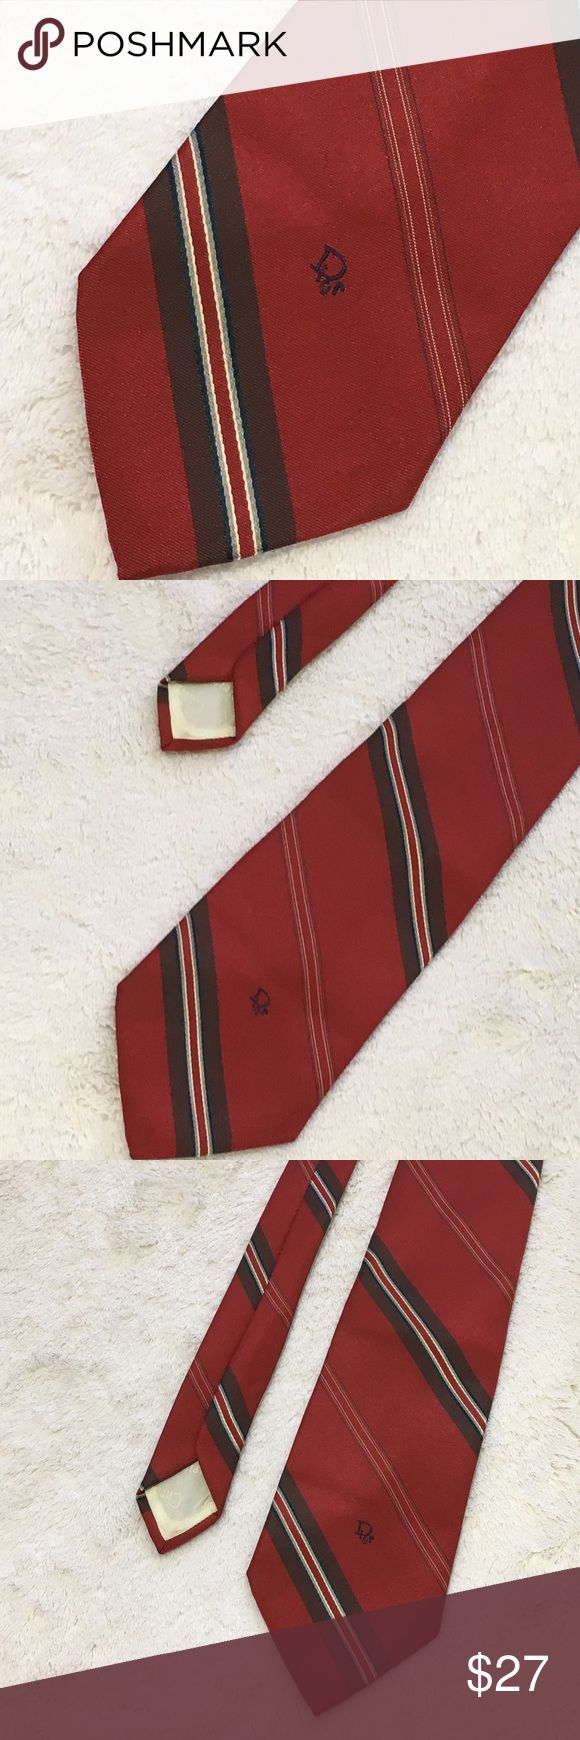 Christian Dior men's tie red & brown Christian Dior men's tie red & brown  Believe this is vintage from the 60's? Unsure but in great shape Christian Dior Accessories Ties